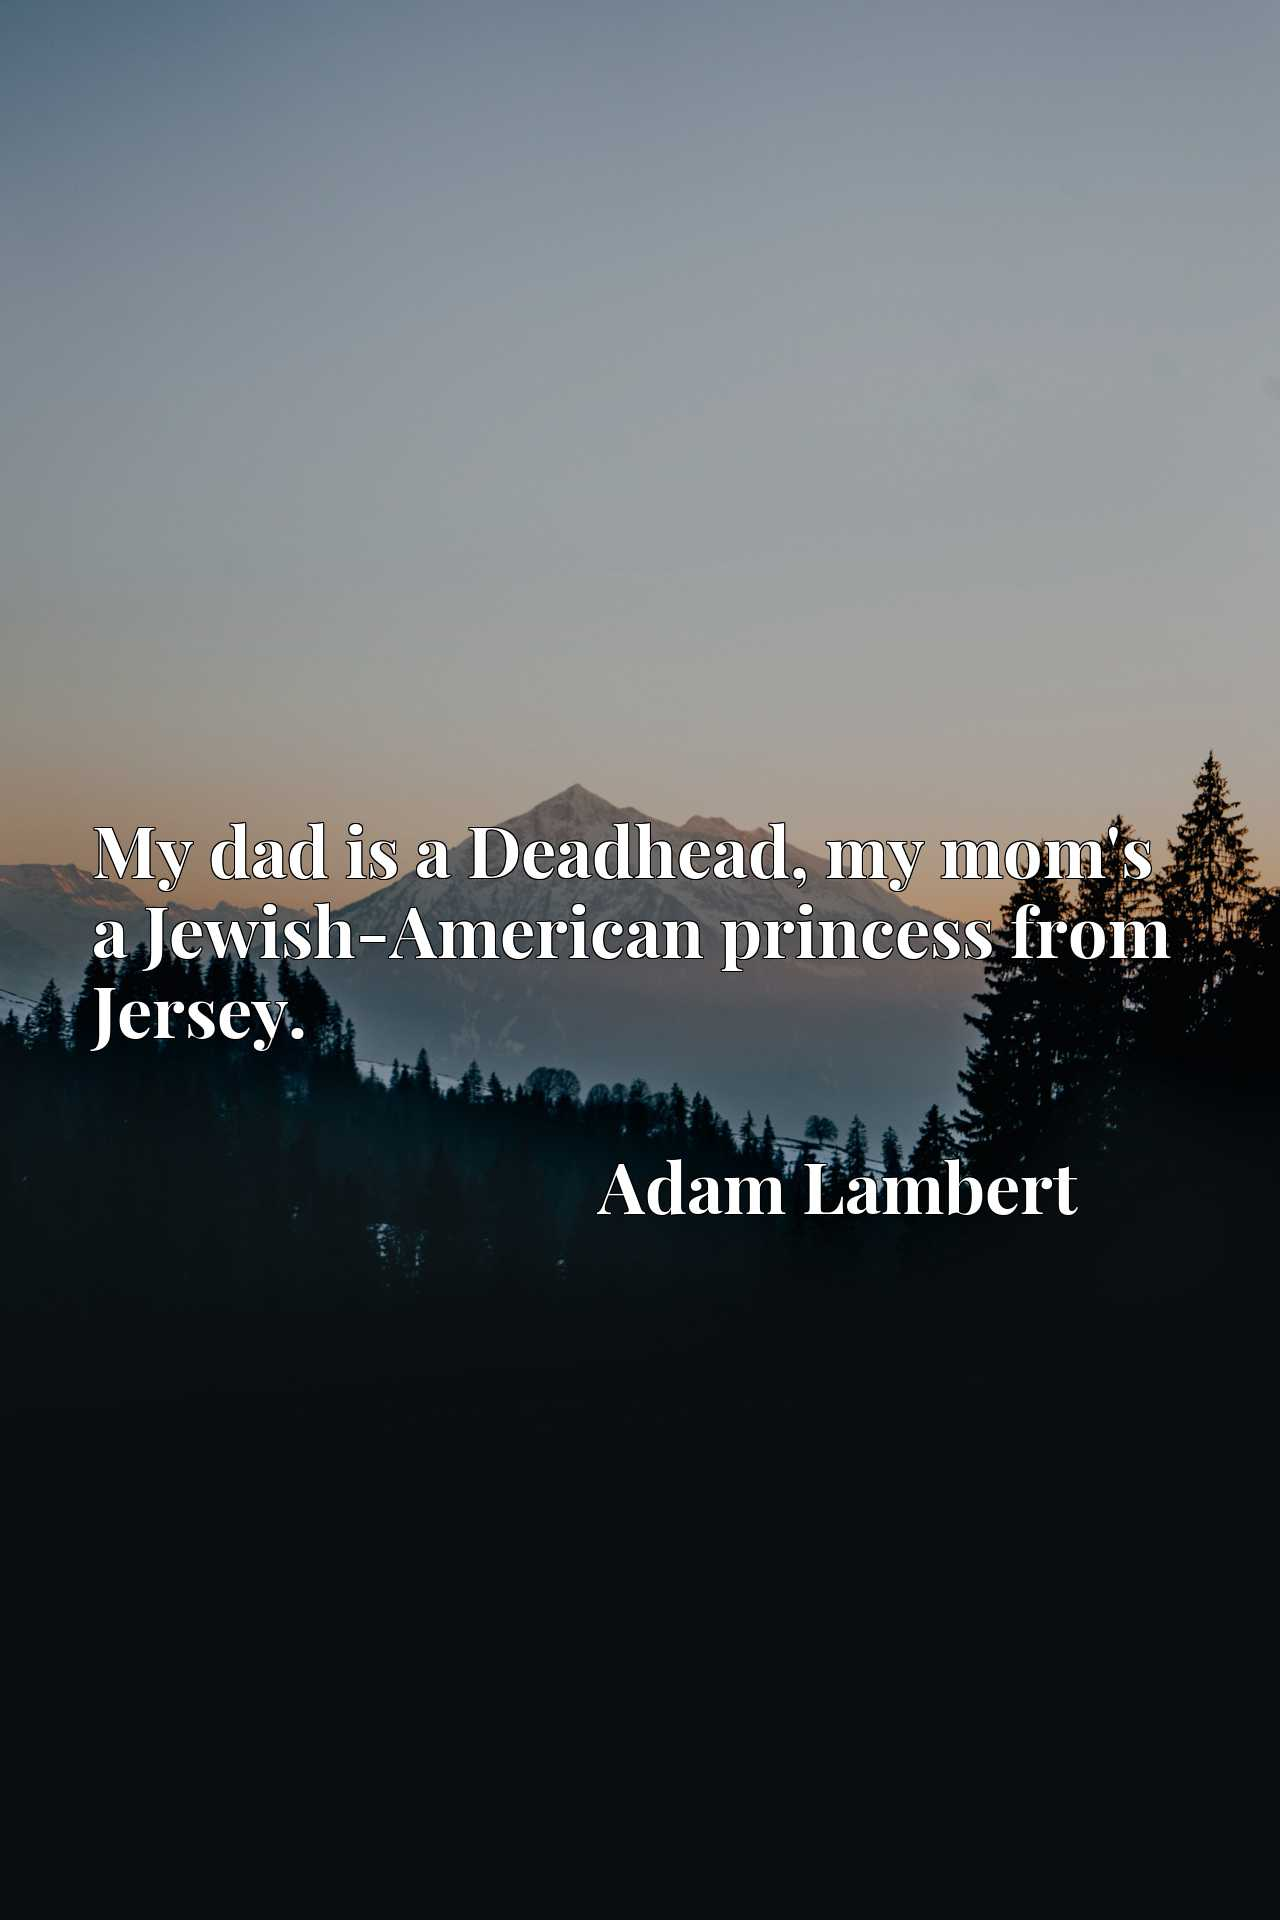 My dad is a Deadhead, my mom's a Jewish-American princess from Jersey.